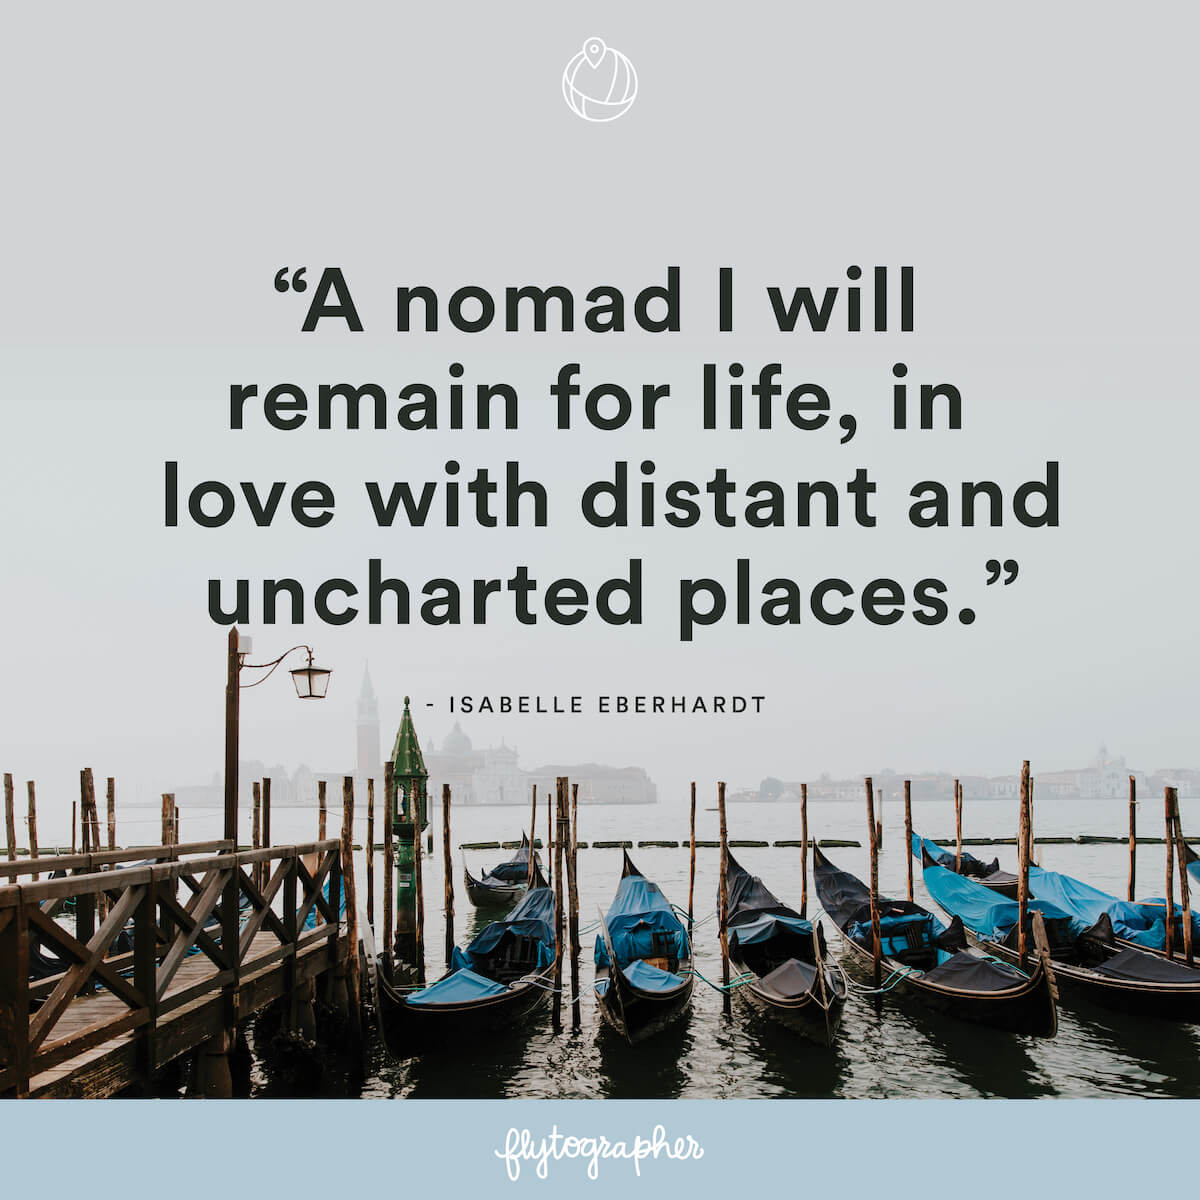 "Travel quote: ""A nomad I will remain for life, in love with distant and uncharted places."" - Isabelle Eberhardt"